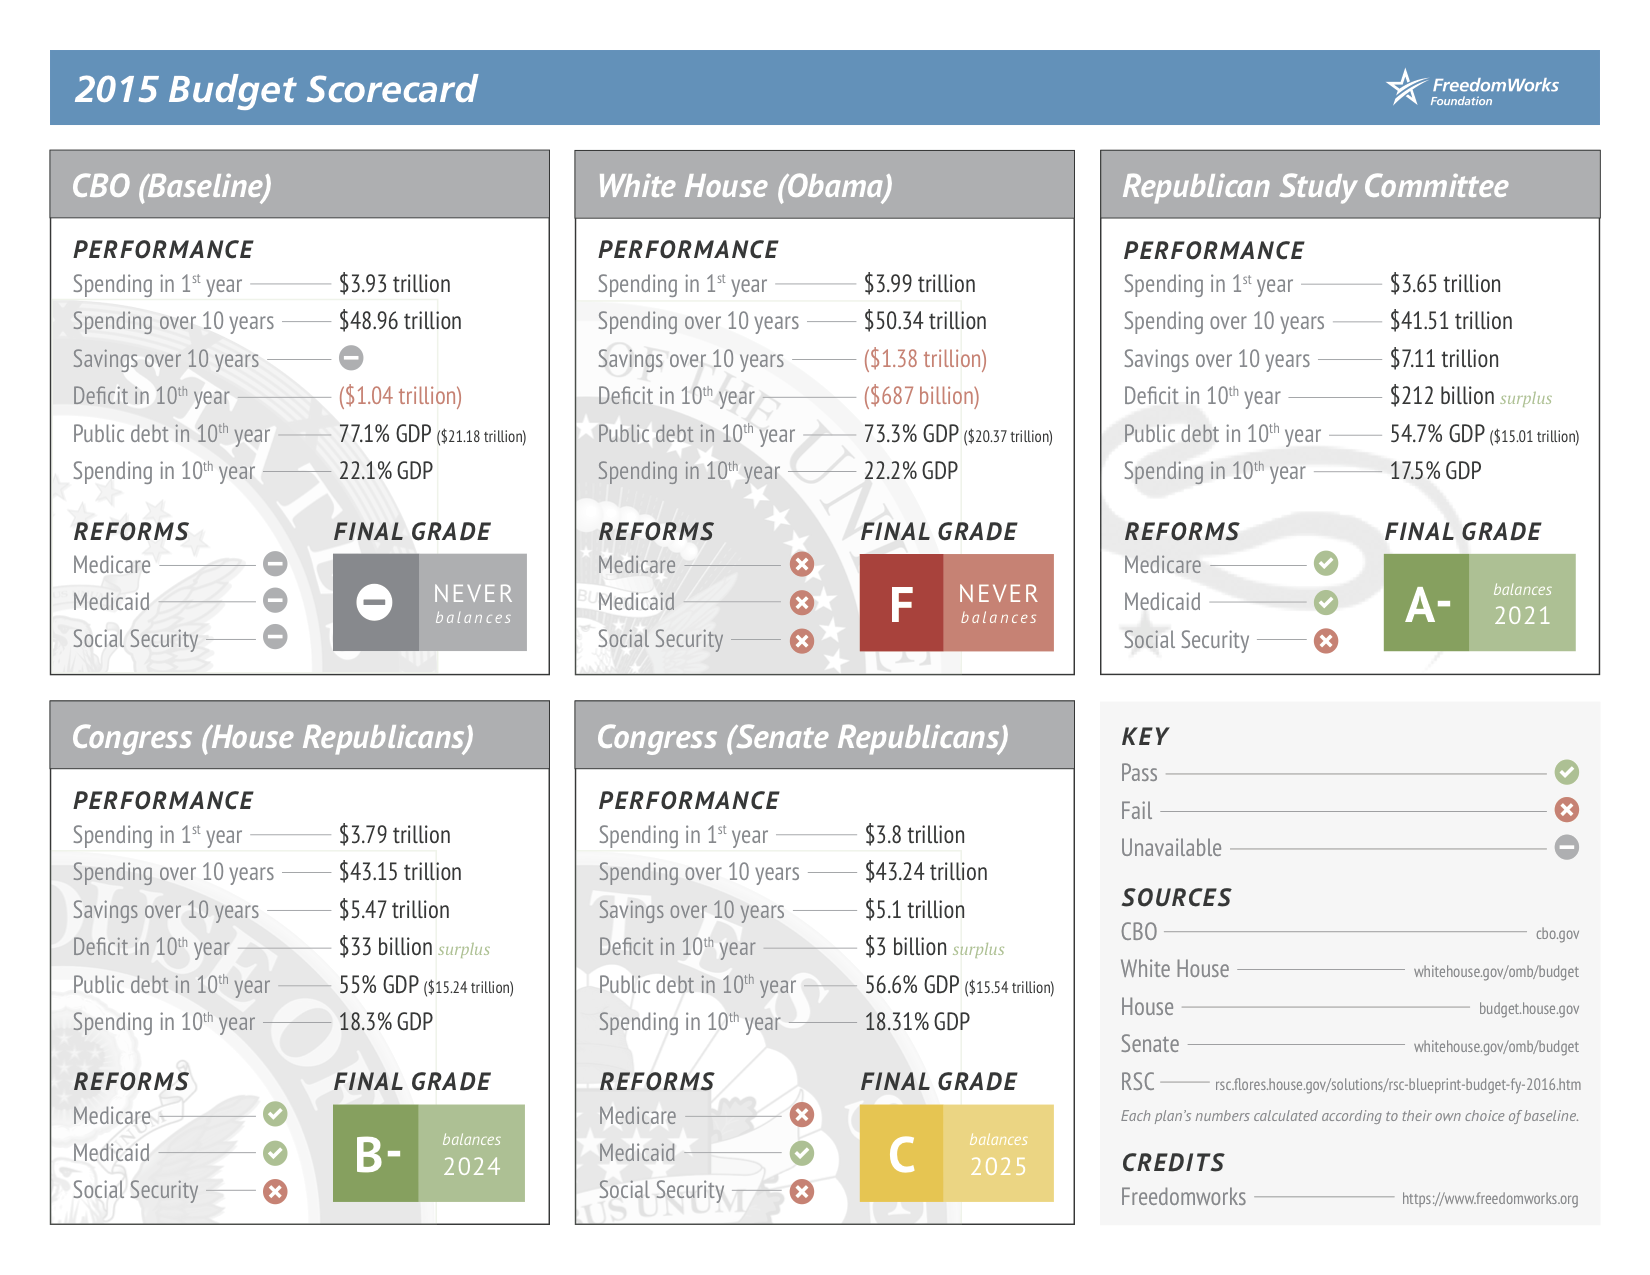 2015 FreedomWorks Budget Scorecard